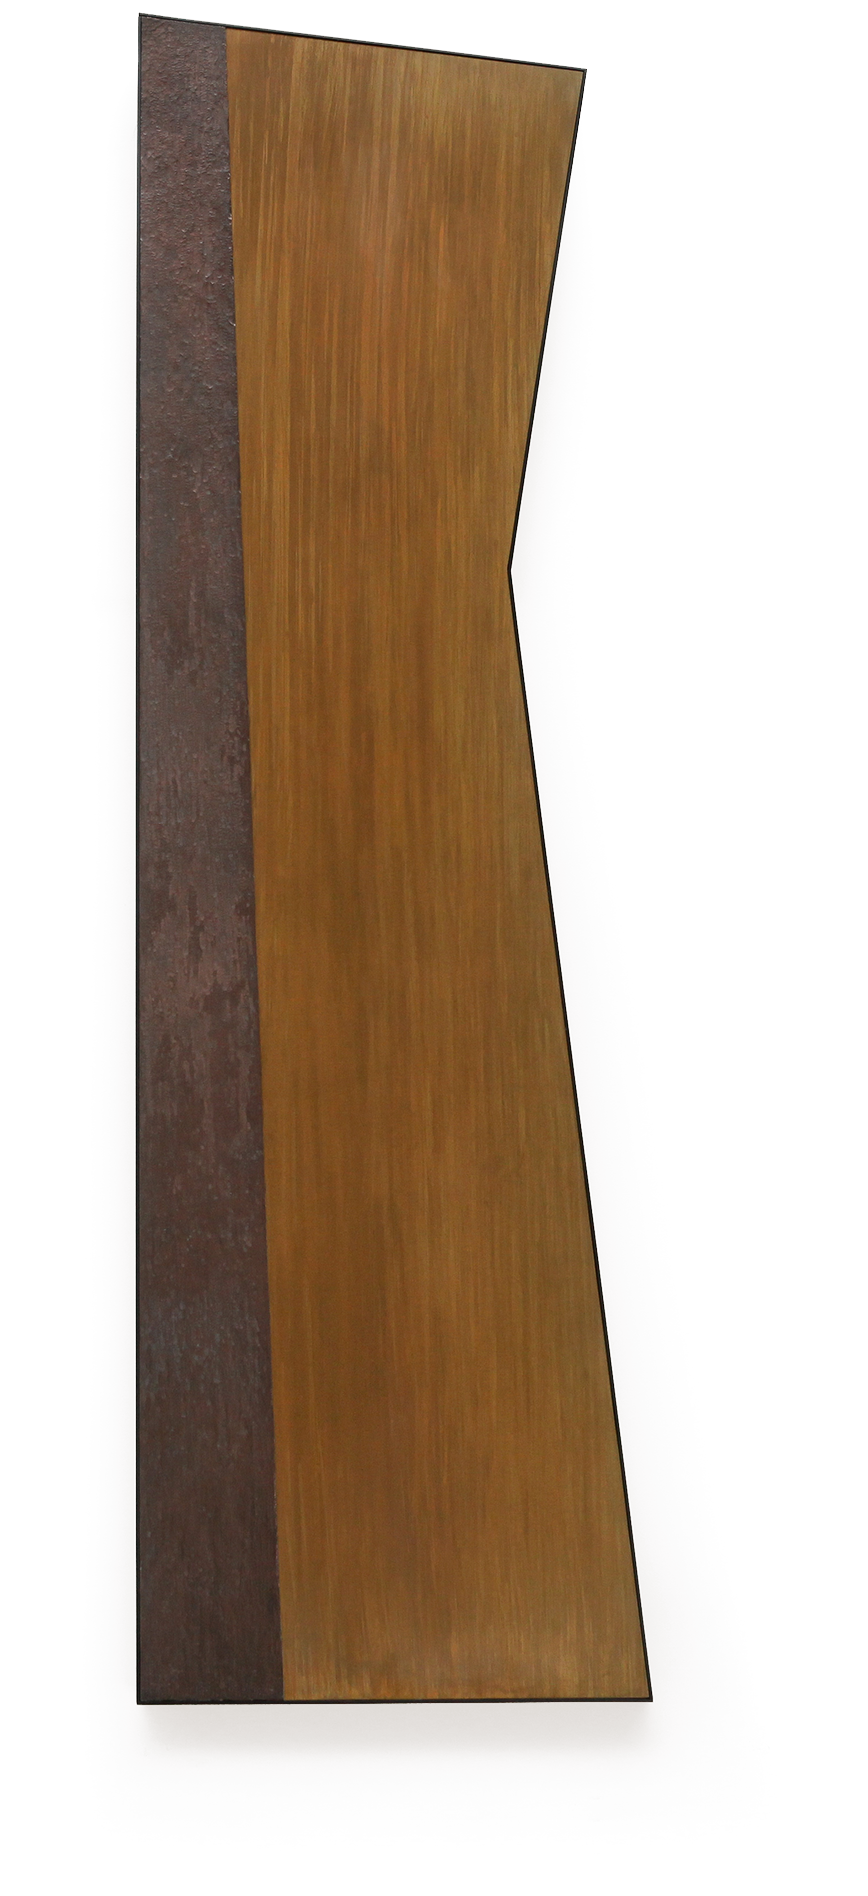 "Zig No. 3 , Dec. 2015, copper, tin, pine, plywood aluminum, 60 5/6""h x18 1/4""w x 2""d"